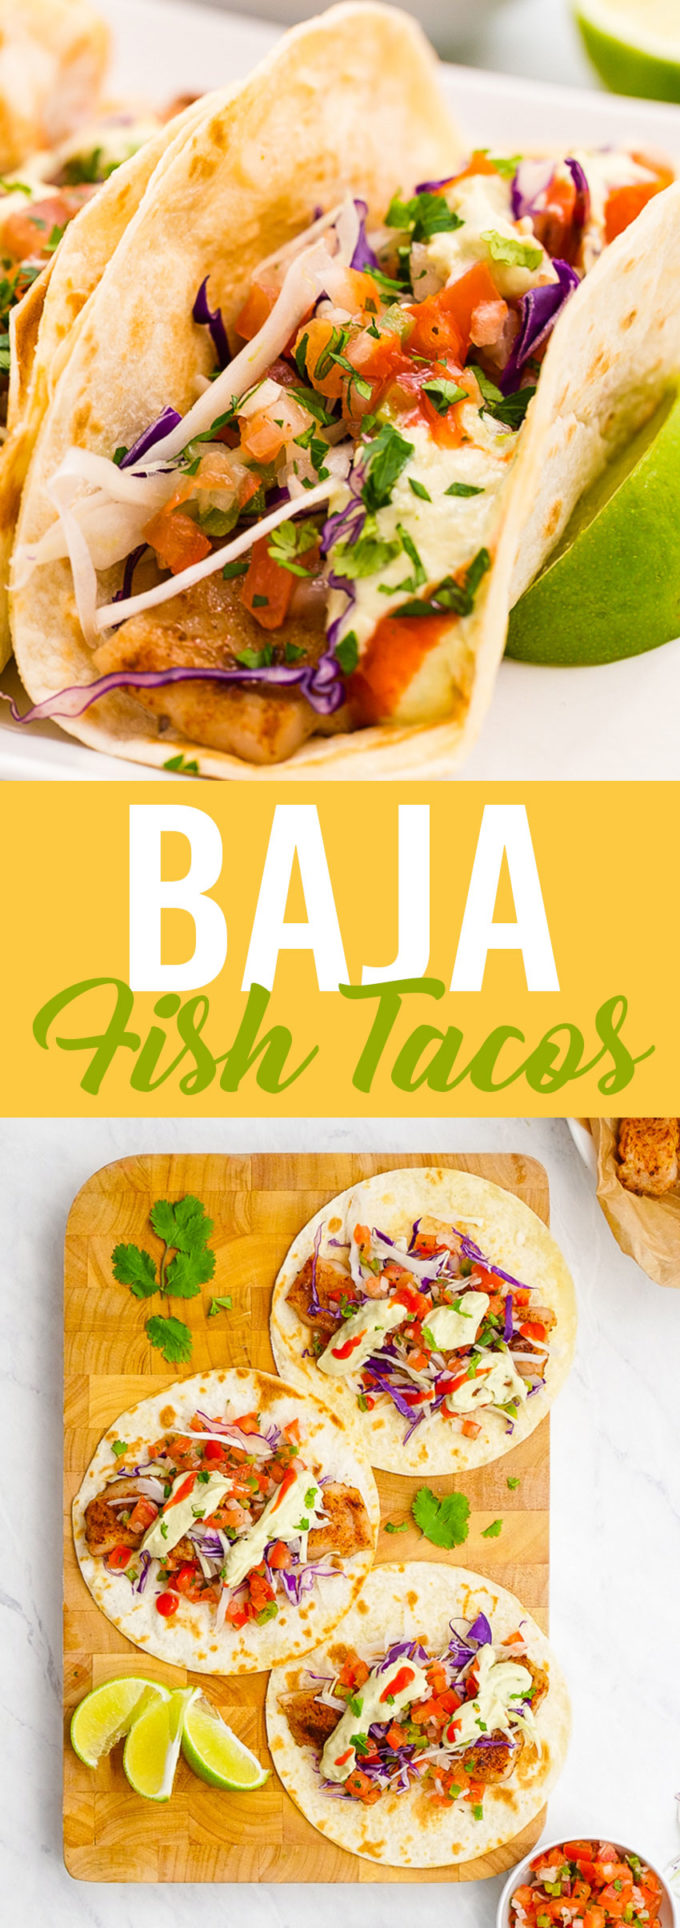 These lightened up Baja fish tacos boast huge flavors without the battering or deep frying. Delicious baked fish, pico, and avocado creme.